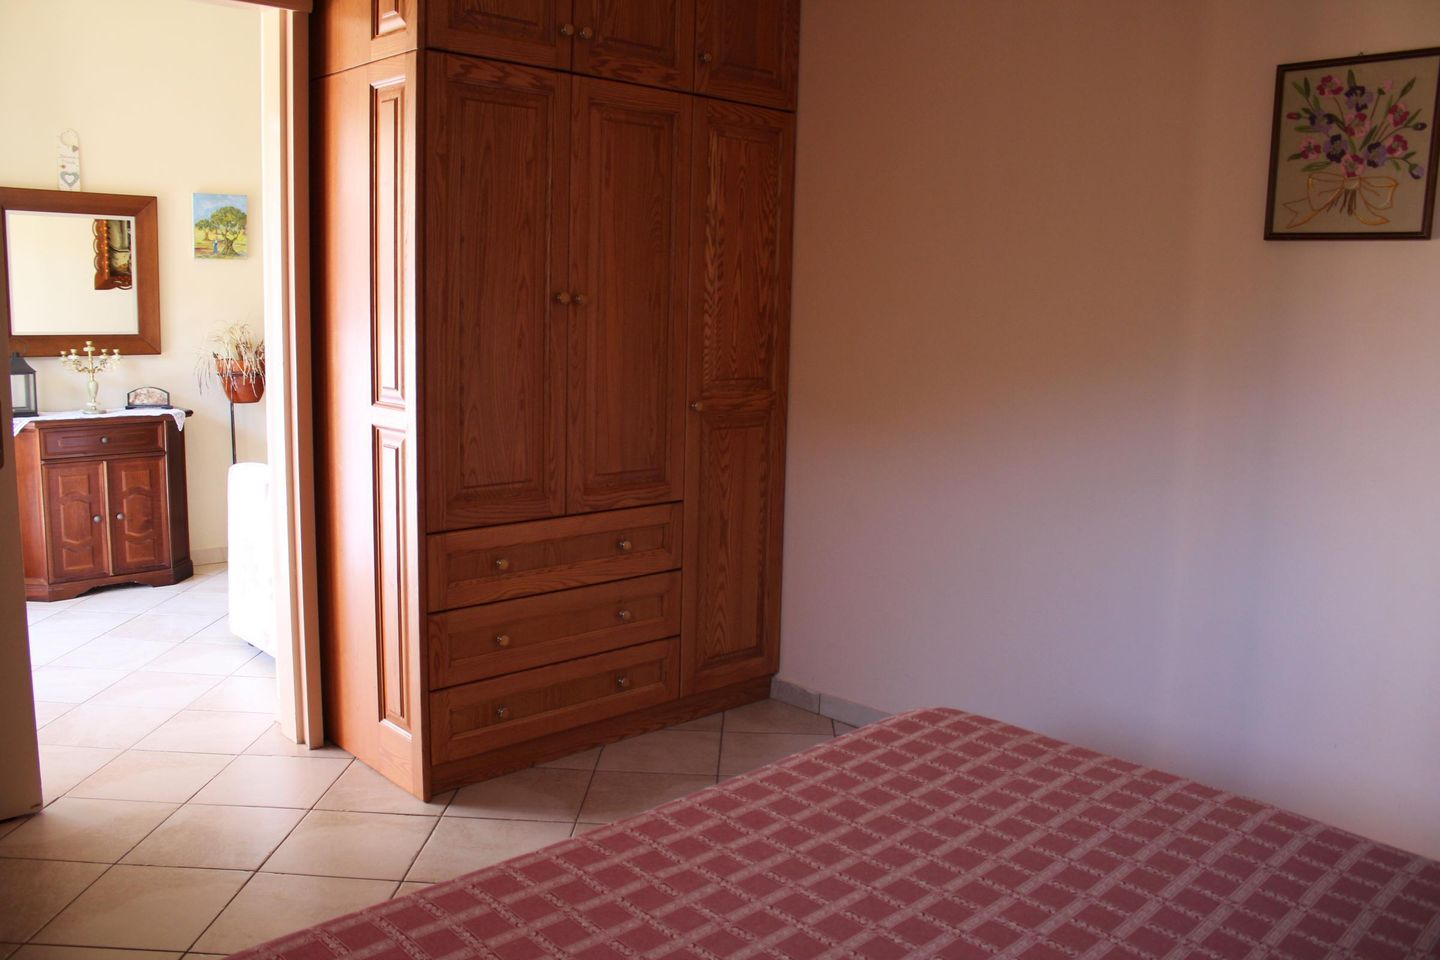 Holiday apartment ELENI (167853), Paramonas, Corfu, Ionian Islands, Greece, picture 13